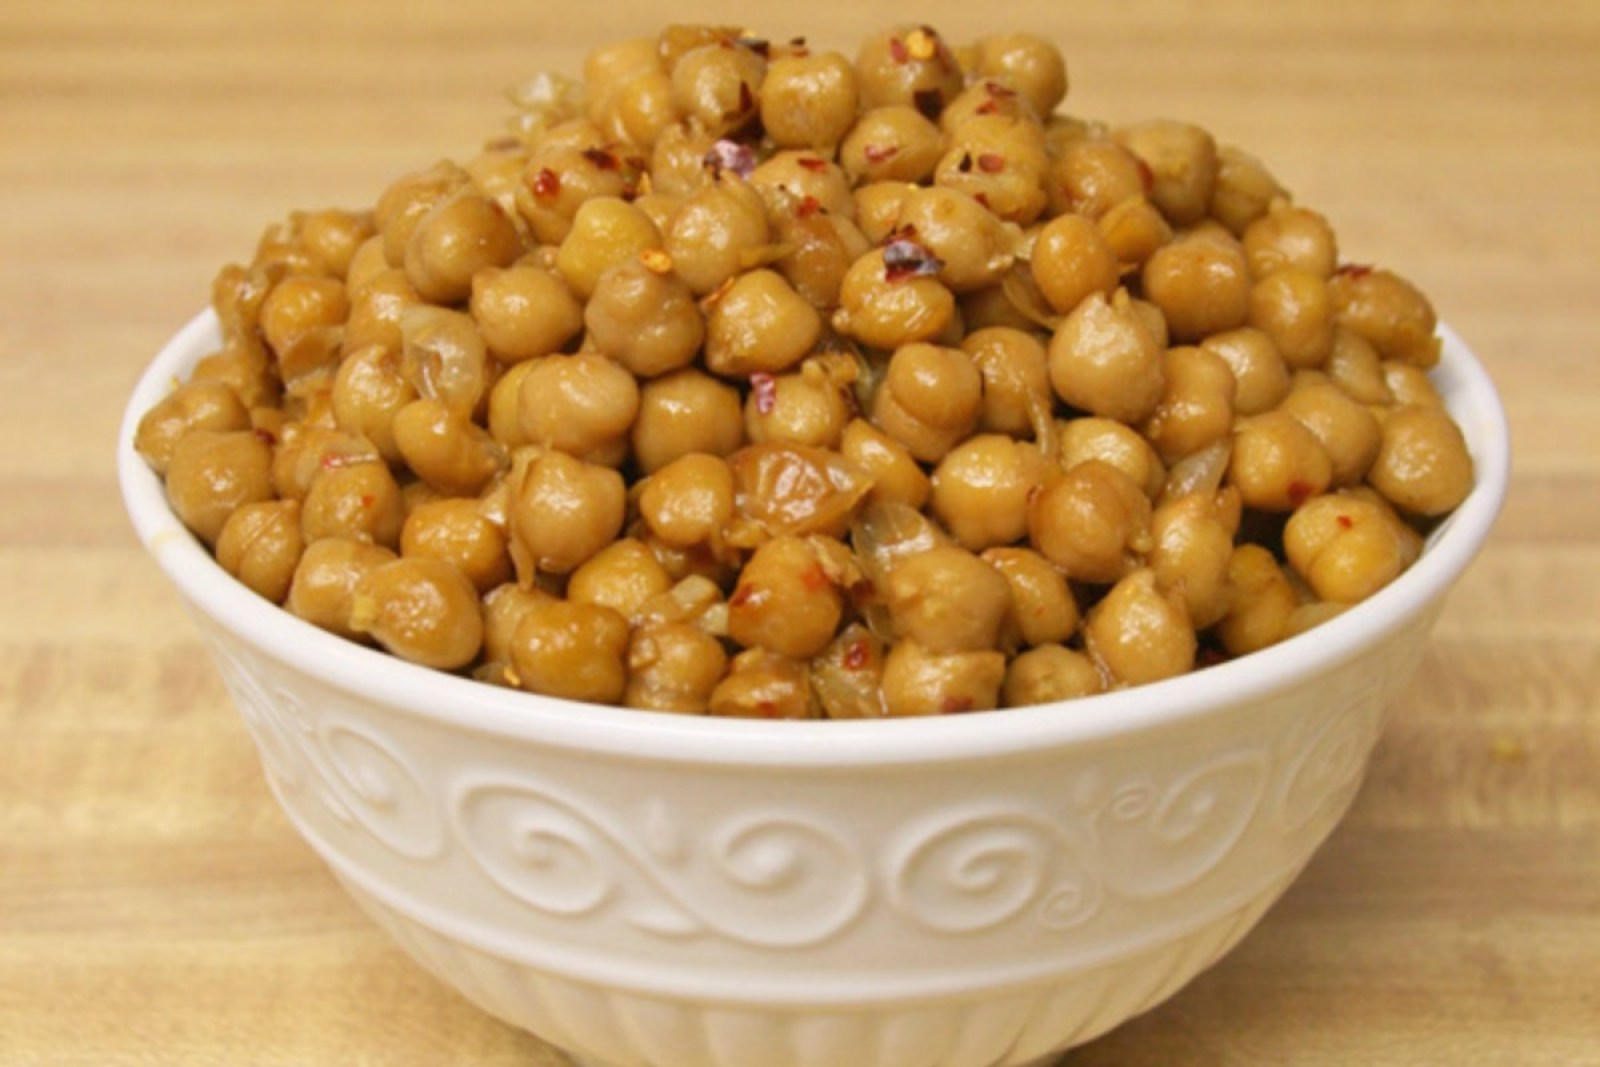 Ginger Garlic Chickpeas [Vegan, Gluten-Free]